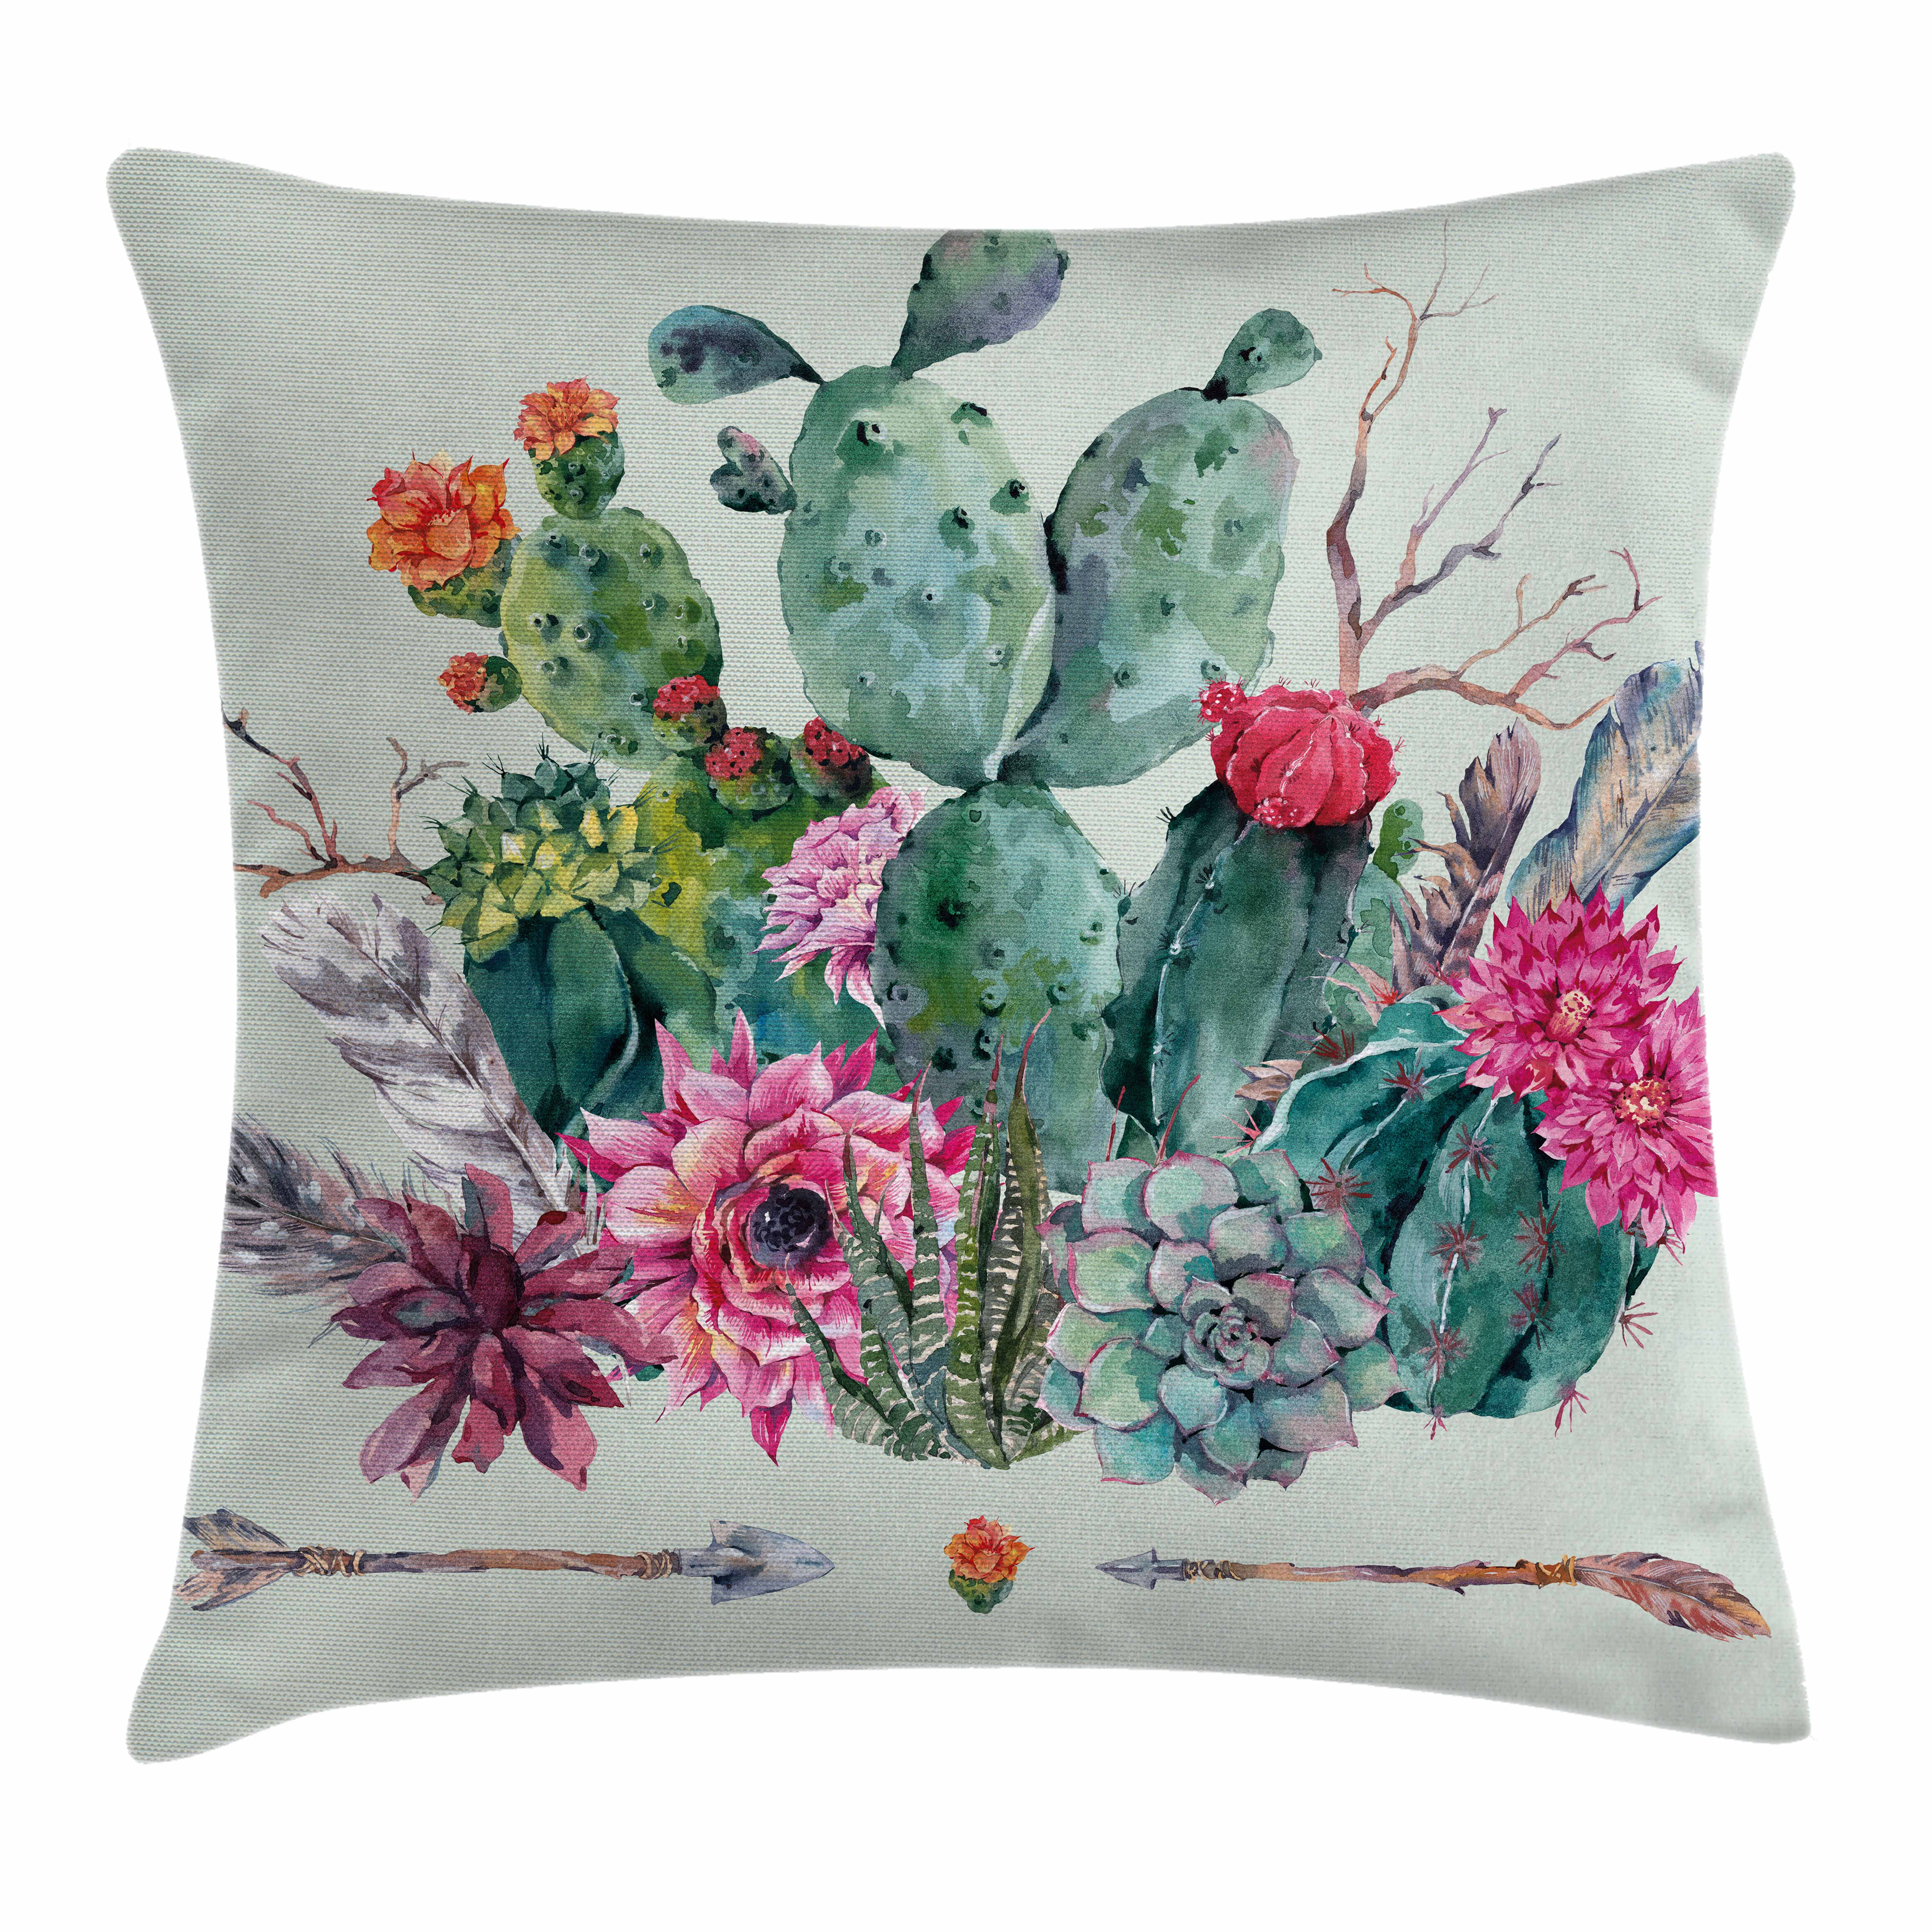 Cactus Decor Throw Pillow Cushion Cover, Spring Garden with Boho Style Bouquet of Thorny Plants Blooms Arrows Feathers, Decorative Square Accent Pillow Case, 16 X 16 Inches, Multicolor, by Ambesonne